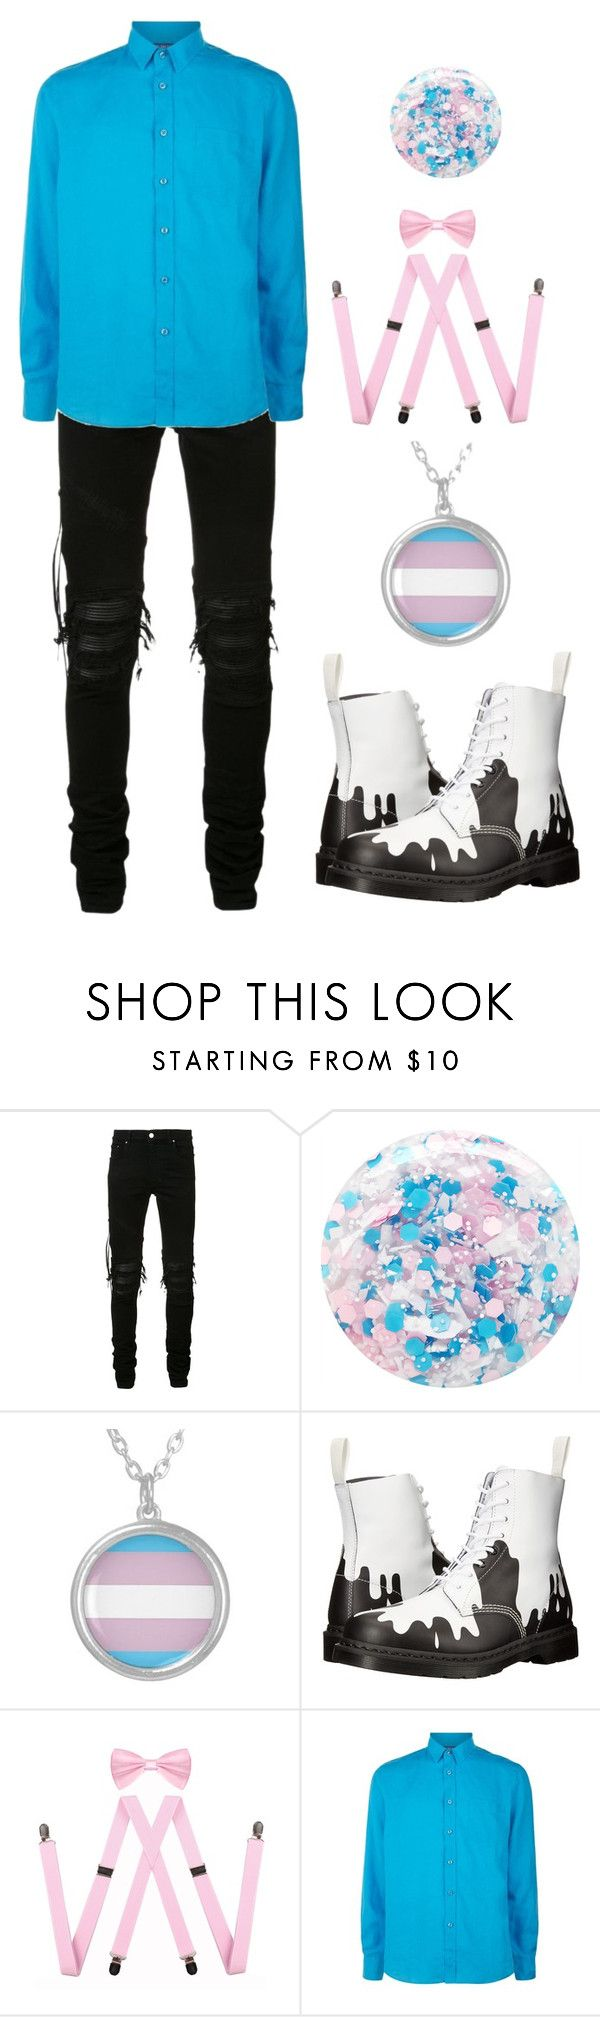 15++ Ftm outfit ideas inspirations